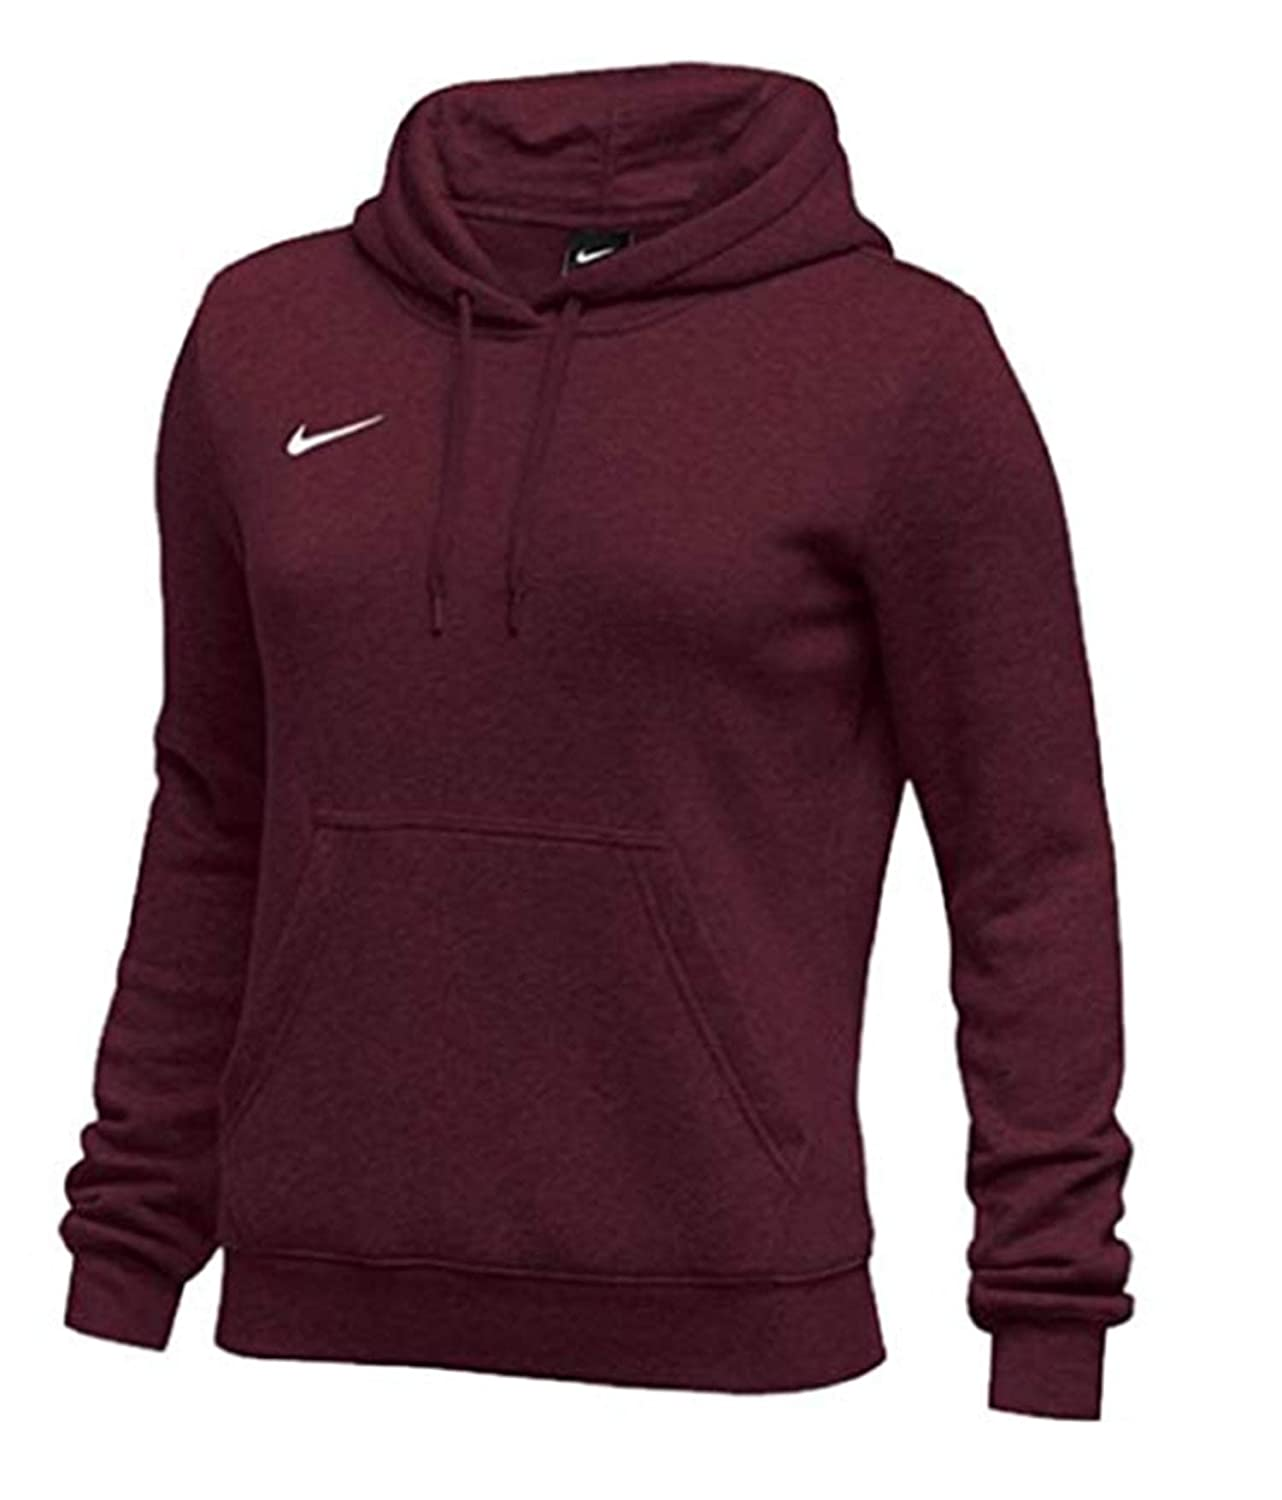 0df7ce45 Nike Womens Pullover Club Fleece Hoodie at Amazon Women's Clothing store: